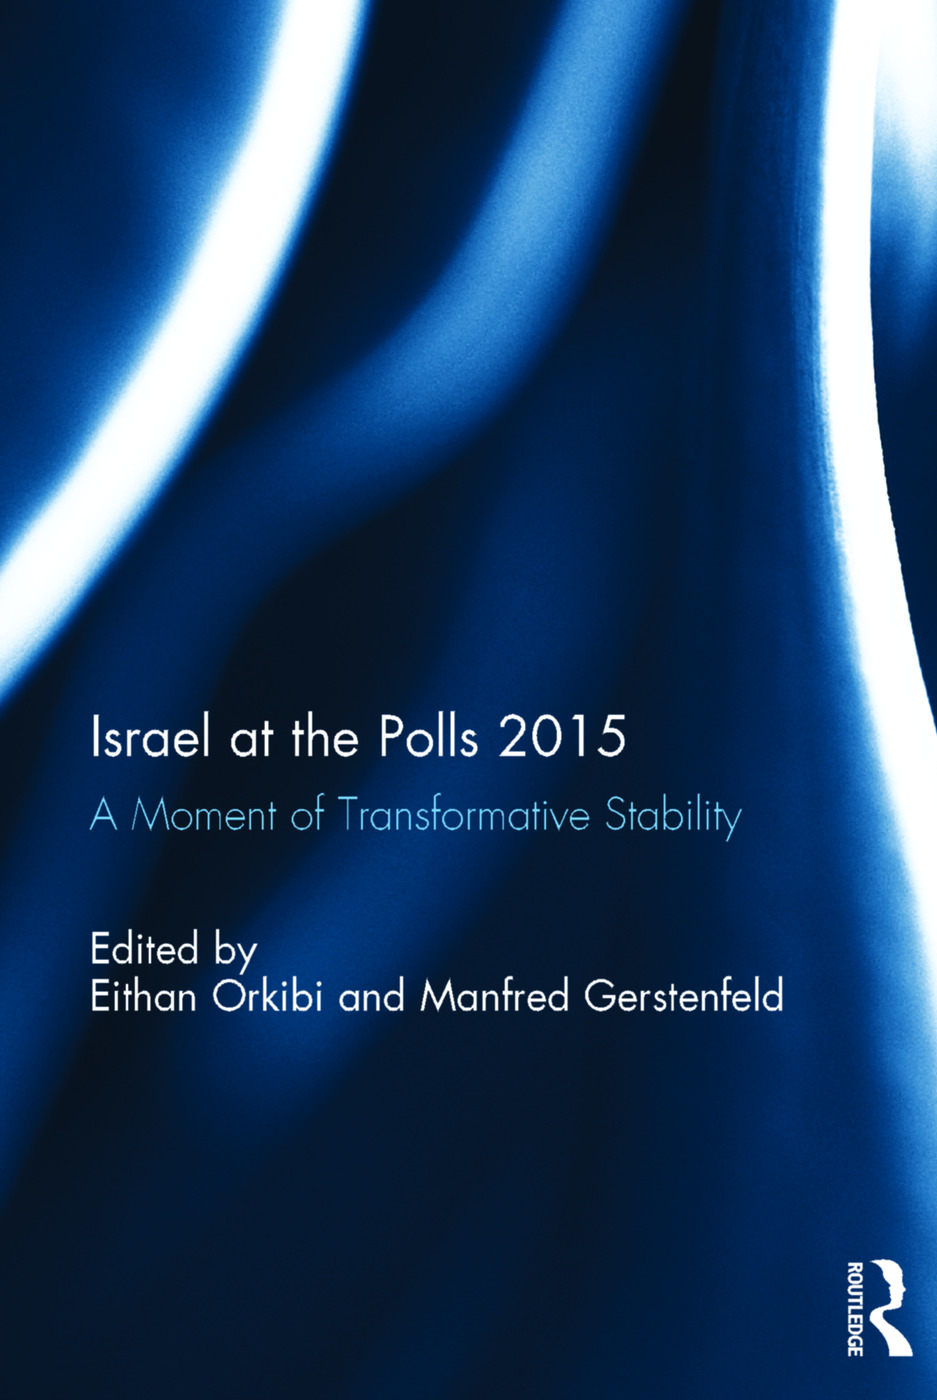 Israel at the Polls 2015: A Moment of Transformative Stability book cover